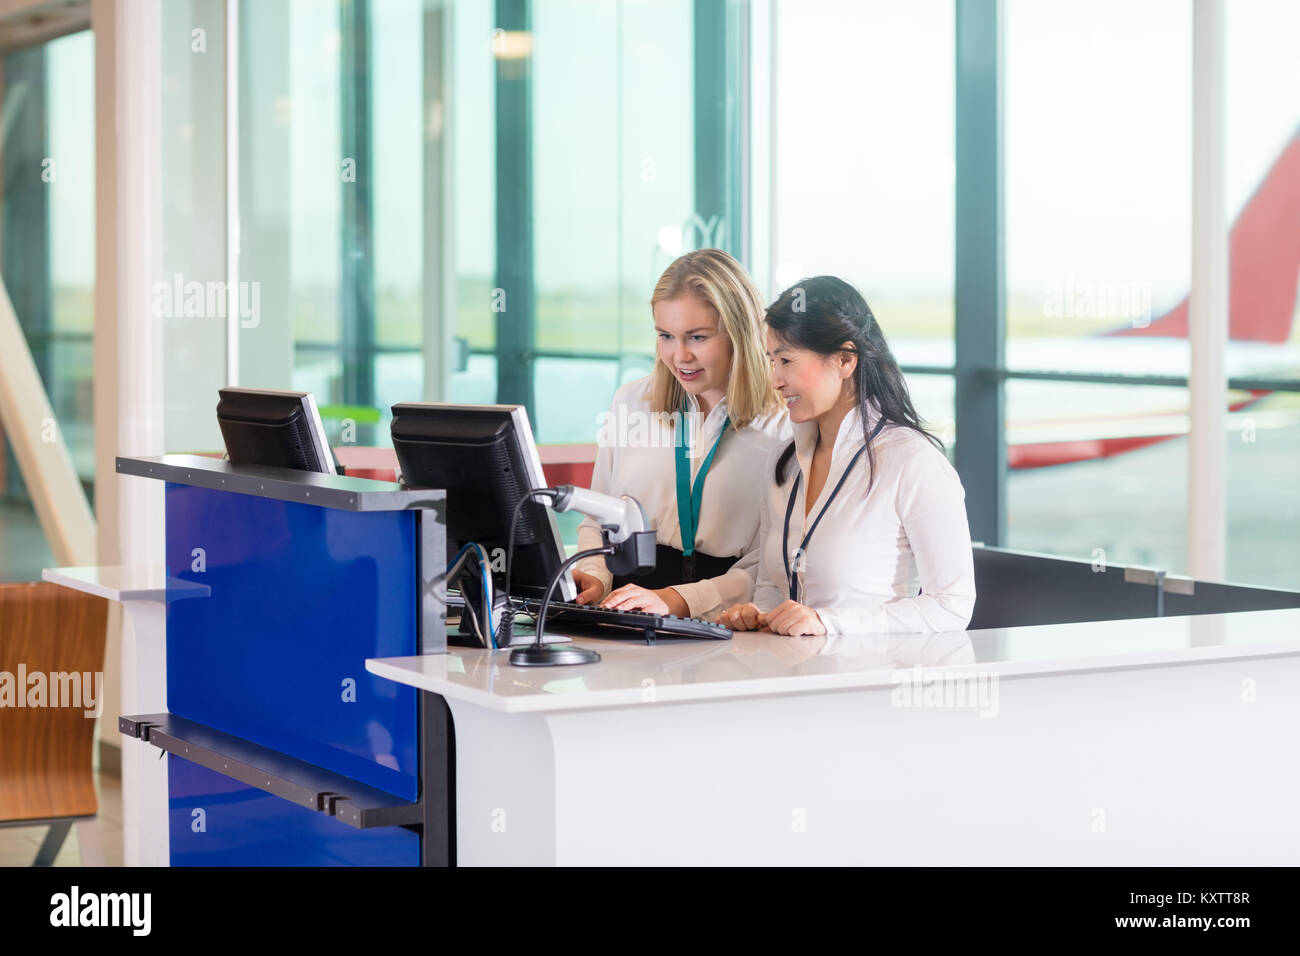 Multiethnic receptionists using computer at counter in airport - Stock Image